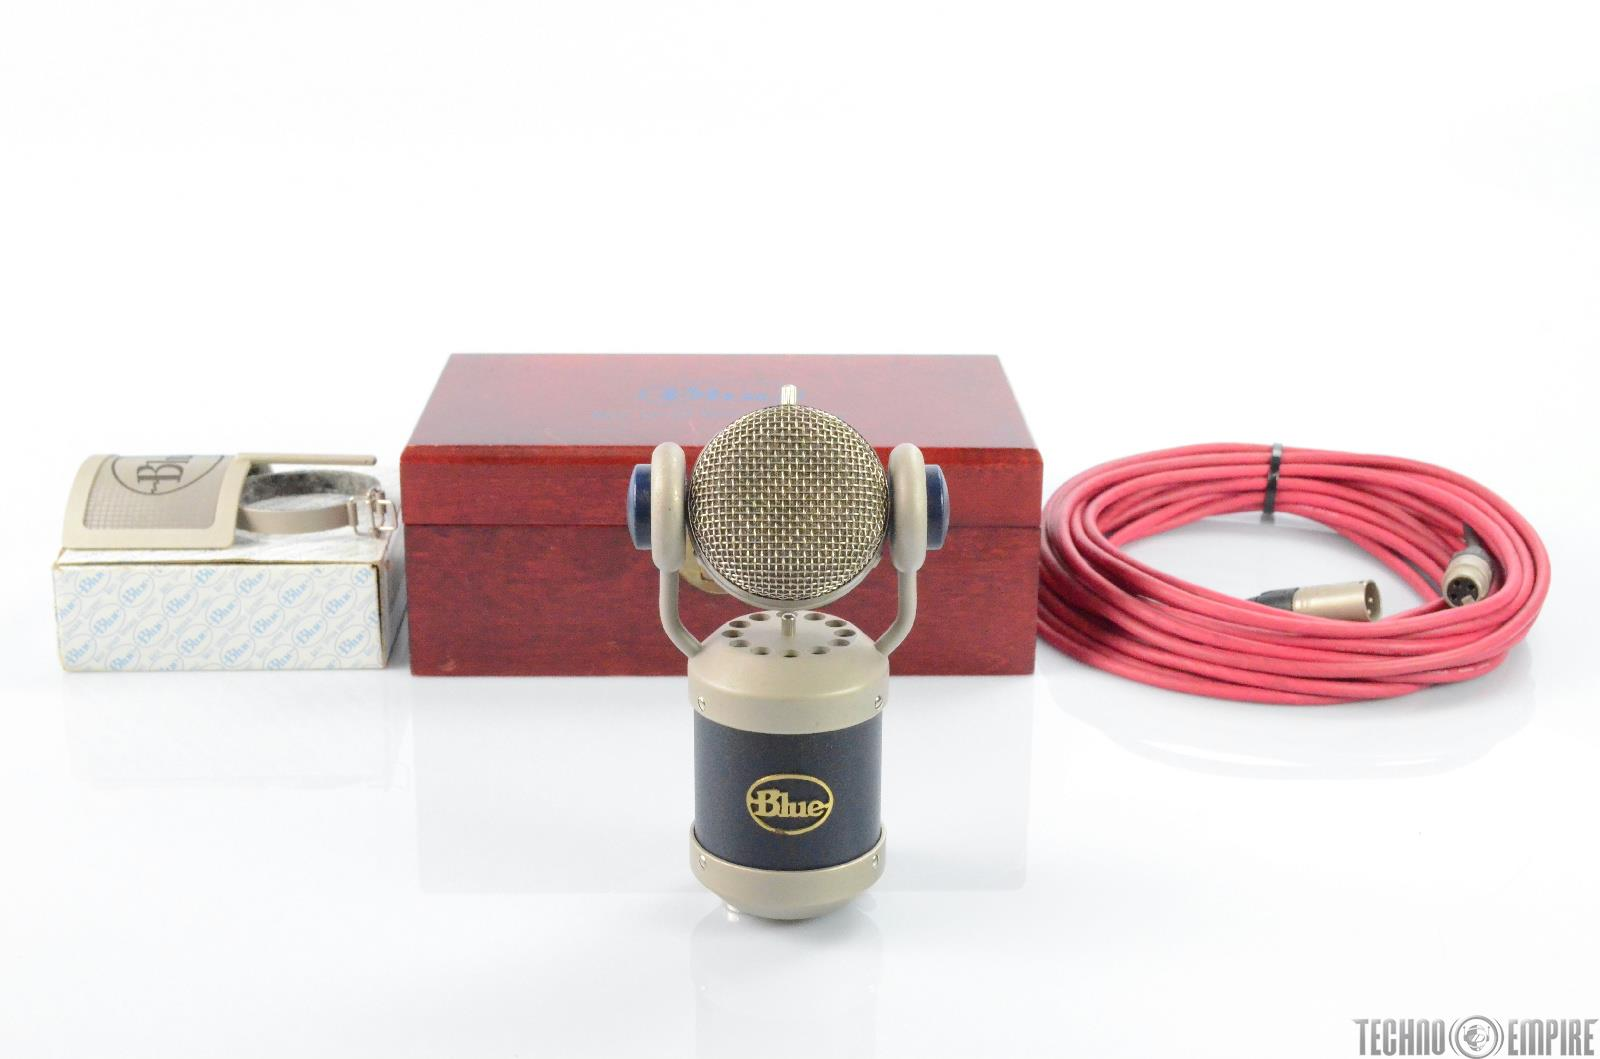 Blue Mics Mouse Cardioid Condenser Microphone w/ Blue Pop Filter & Extras #29759